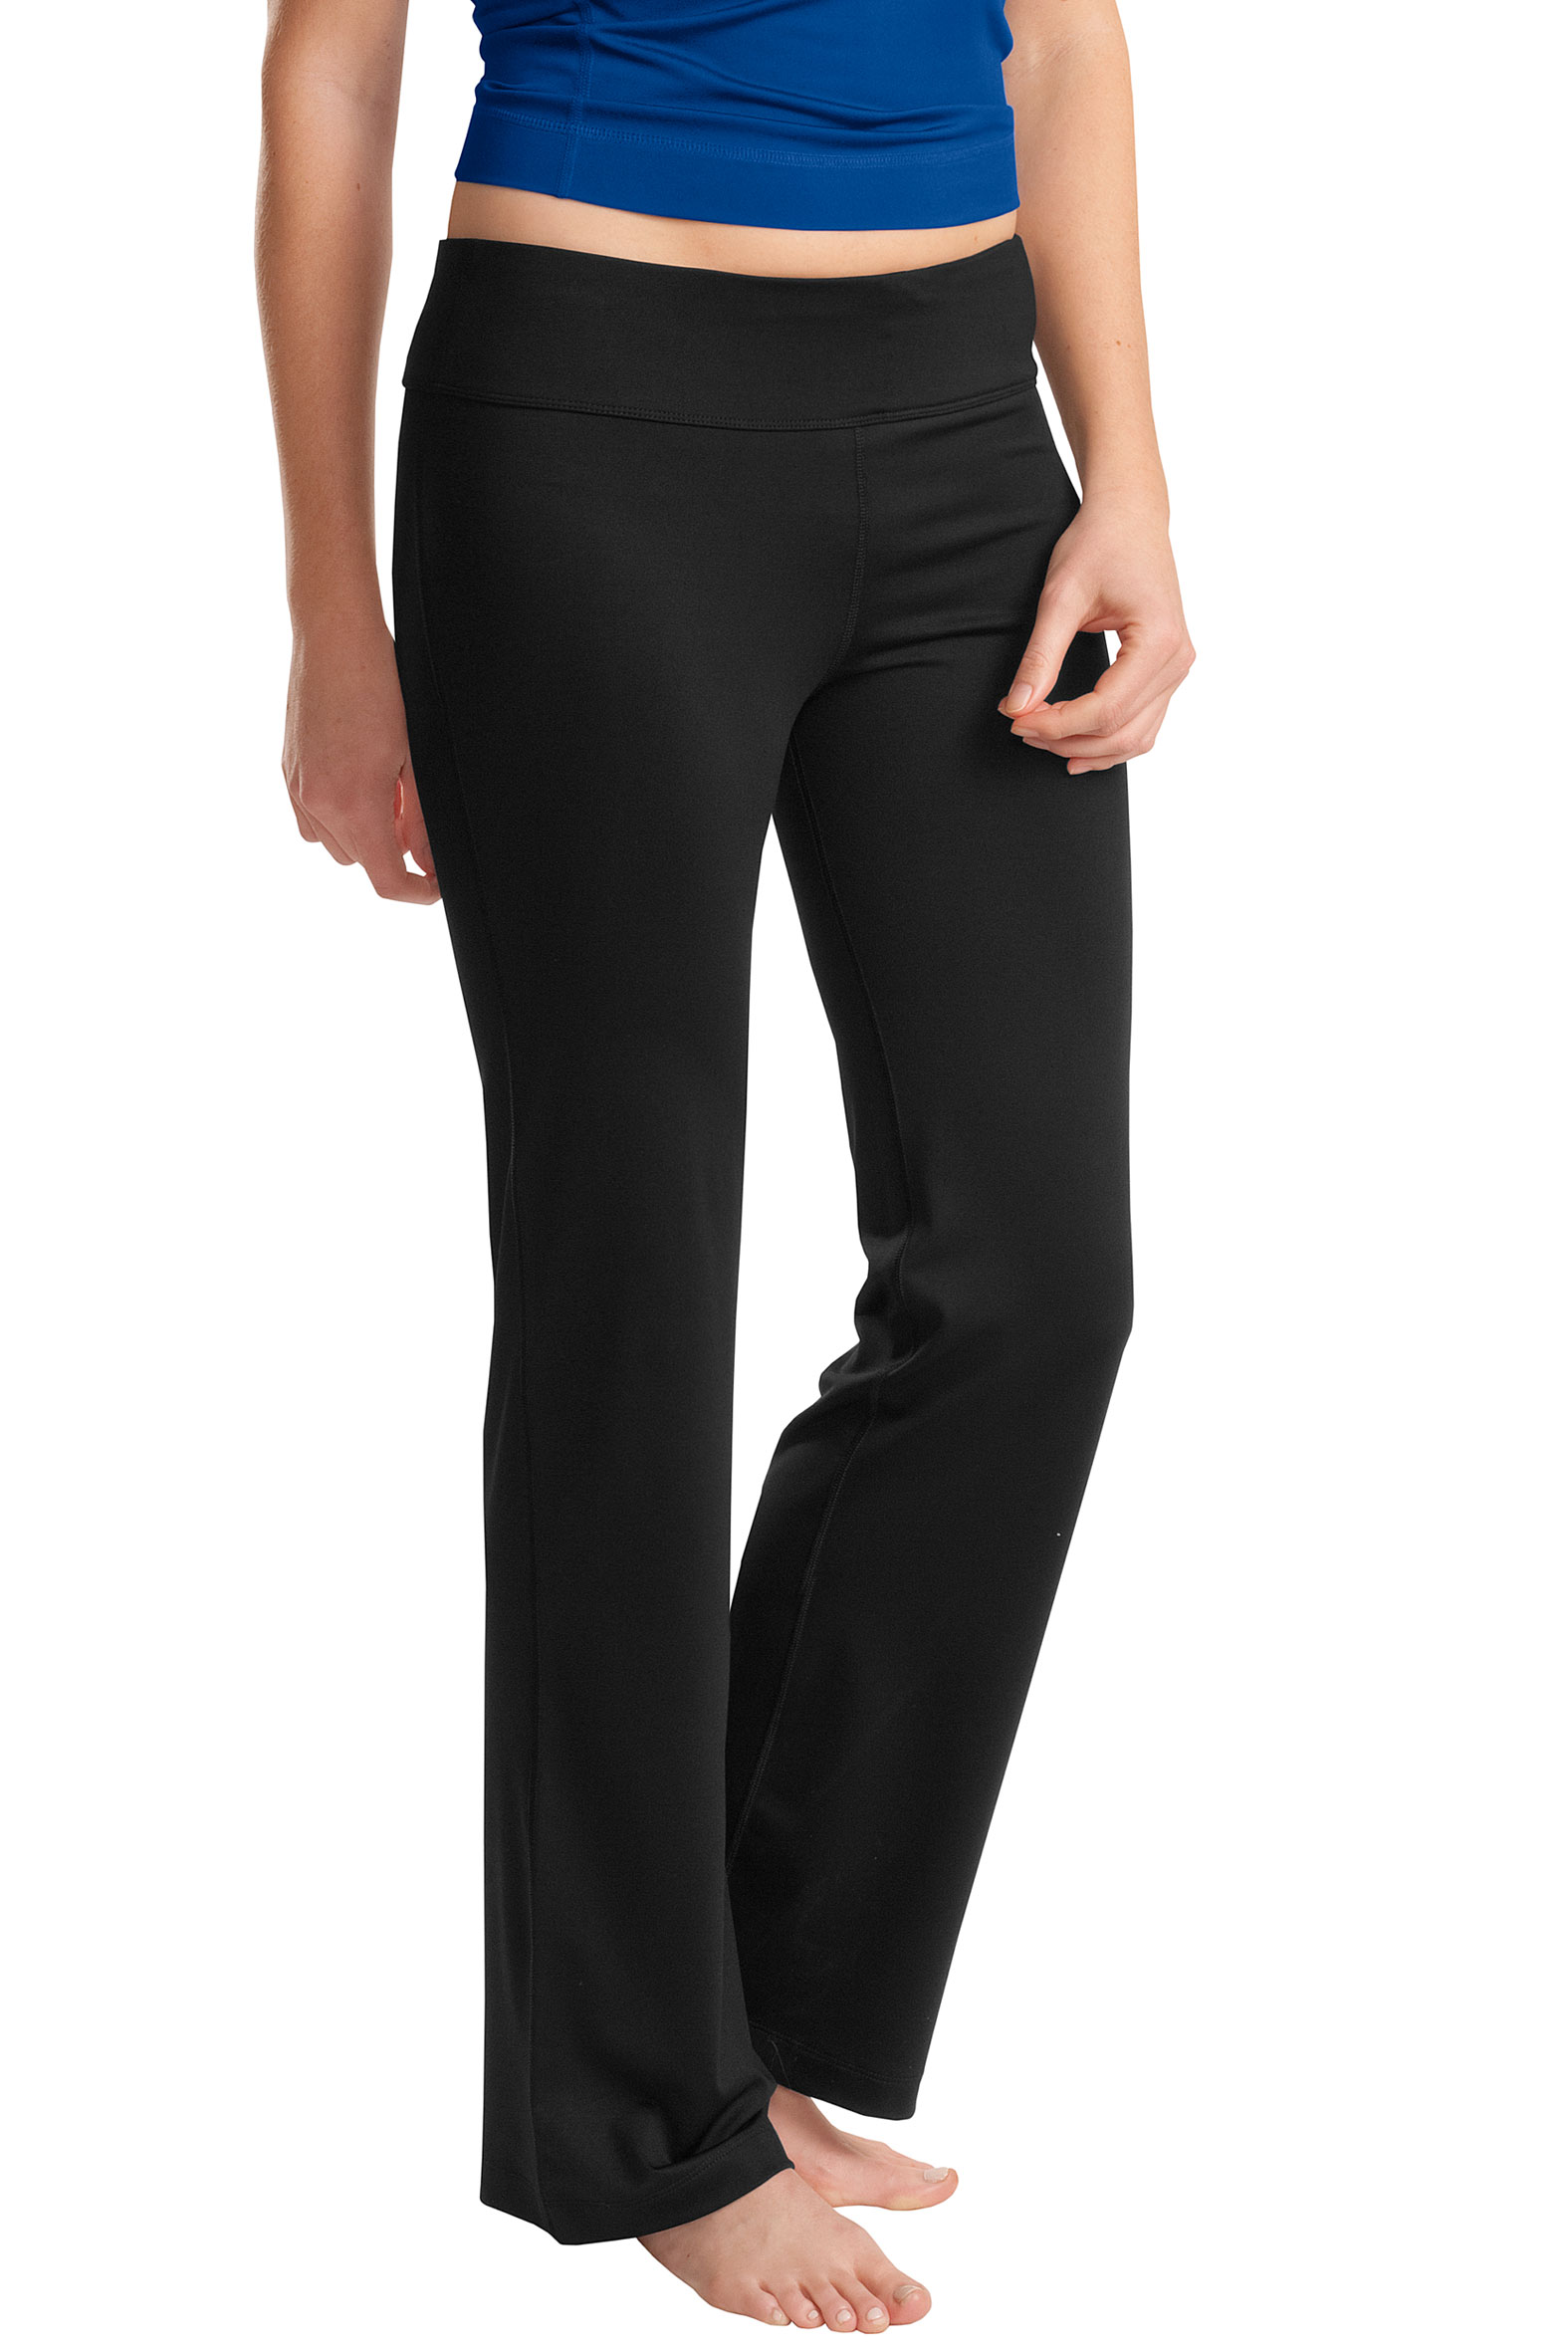 Sport-Tek® - Ladies NRG Fitness Pant